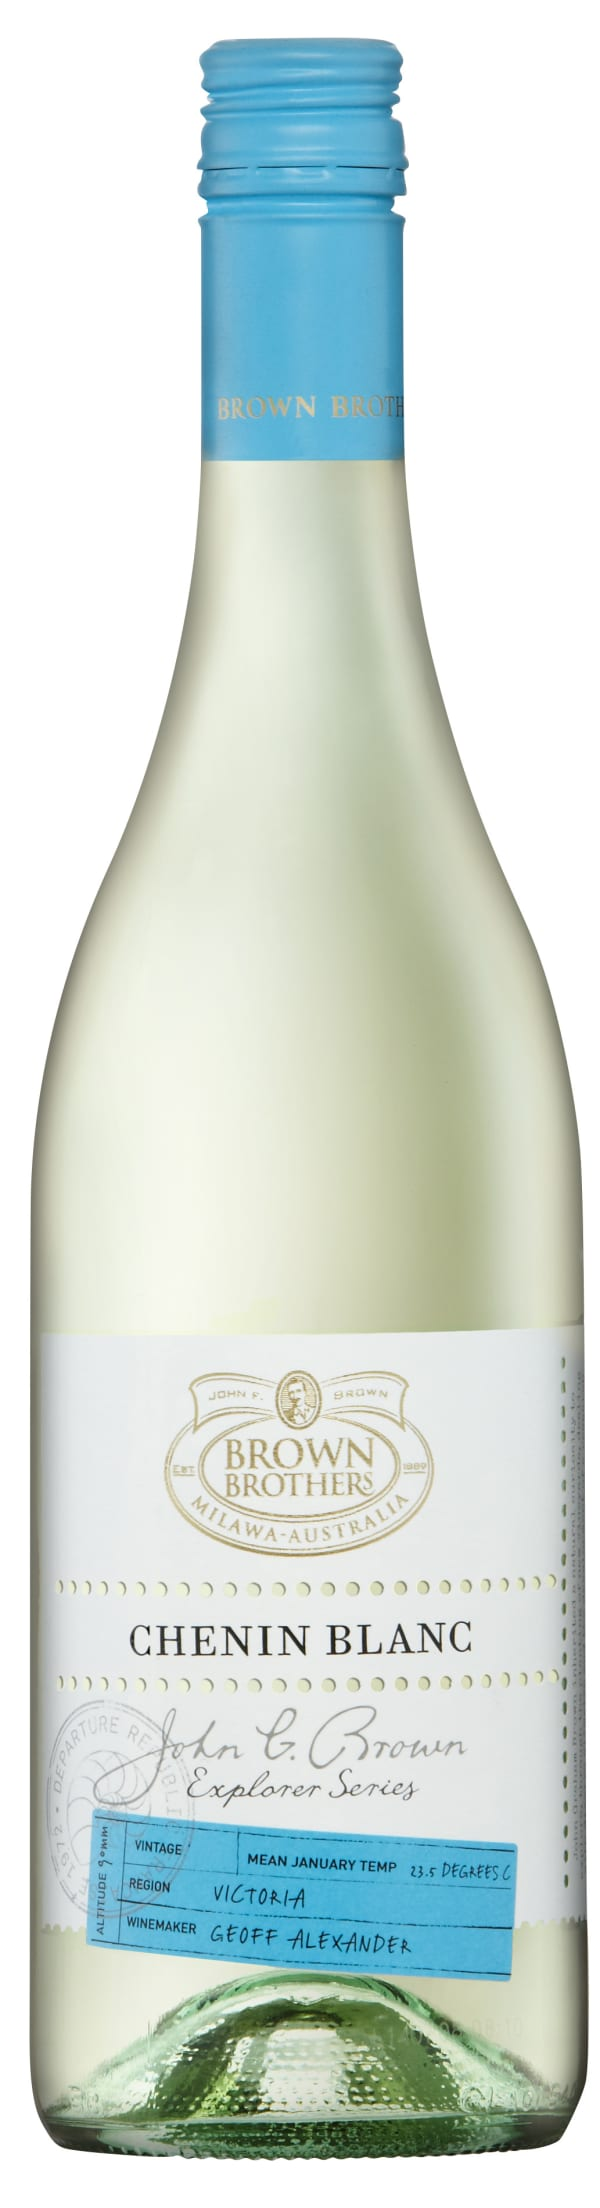 Brown Brothers Chenin Blanc 2015